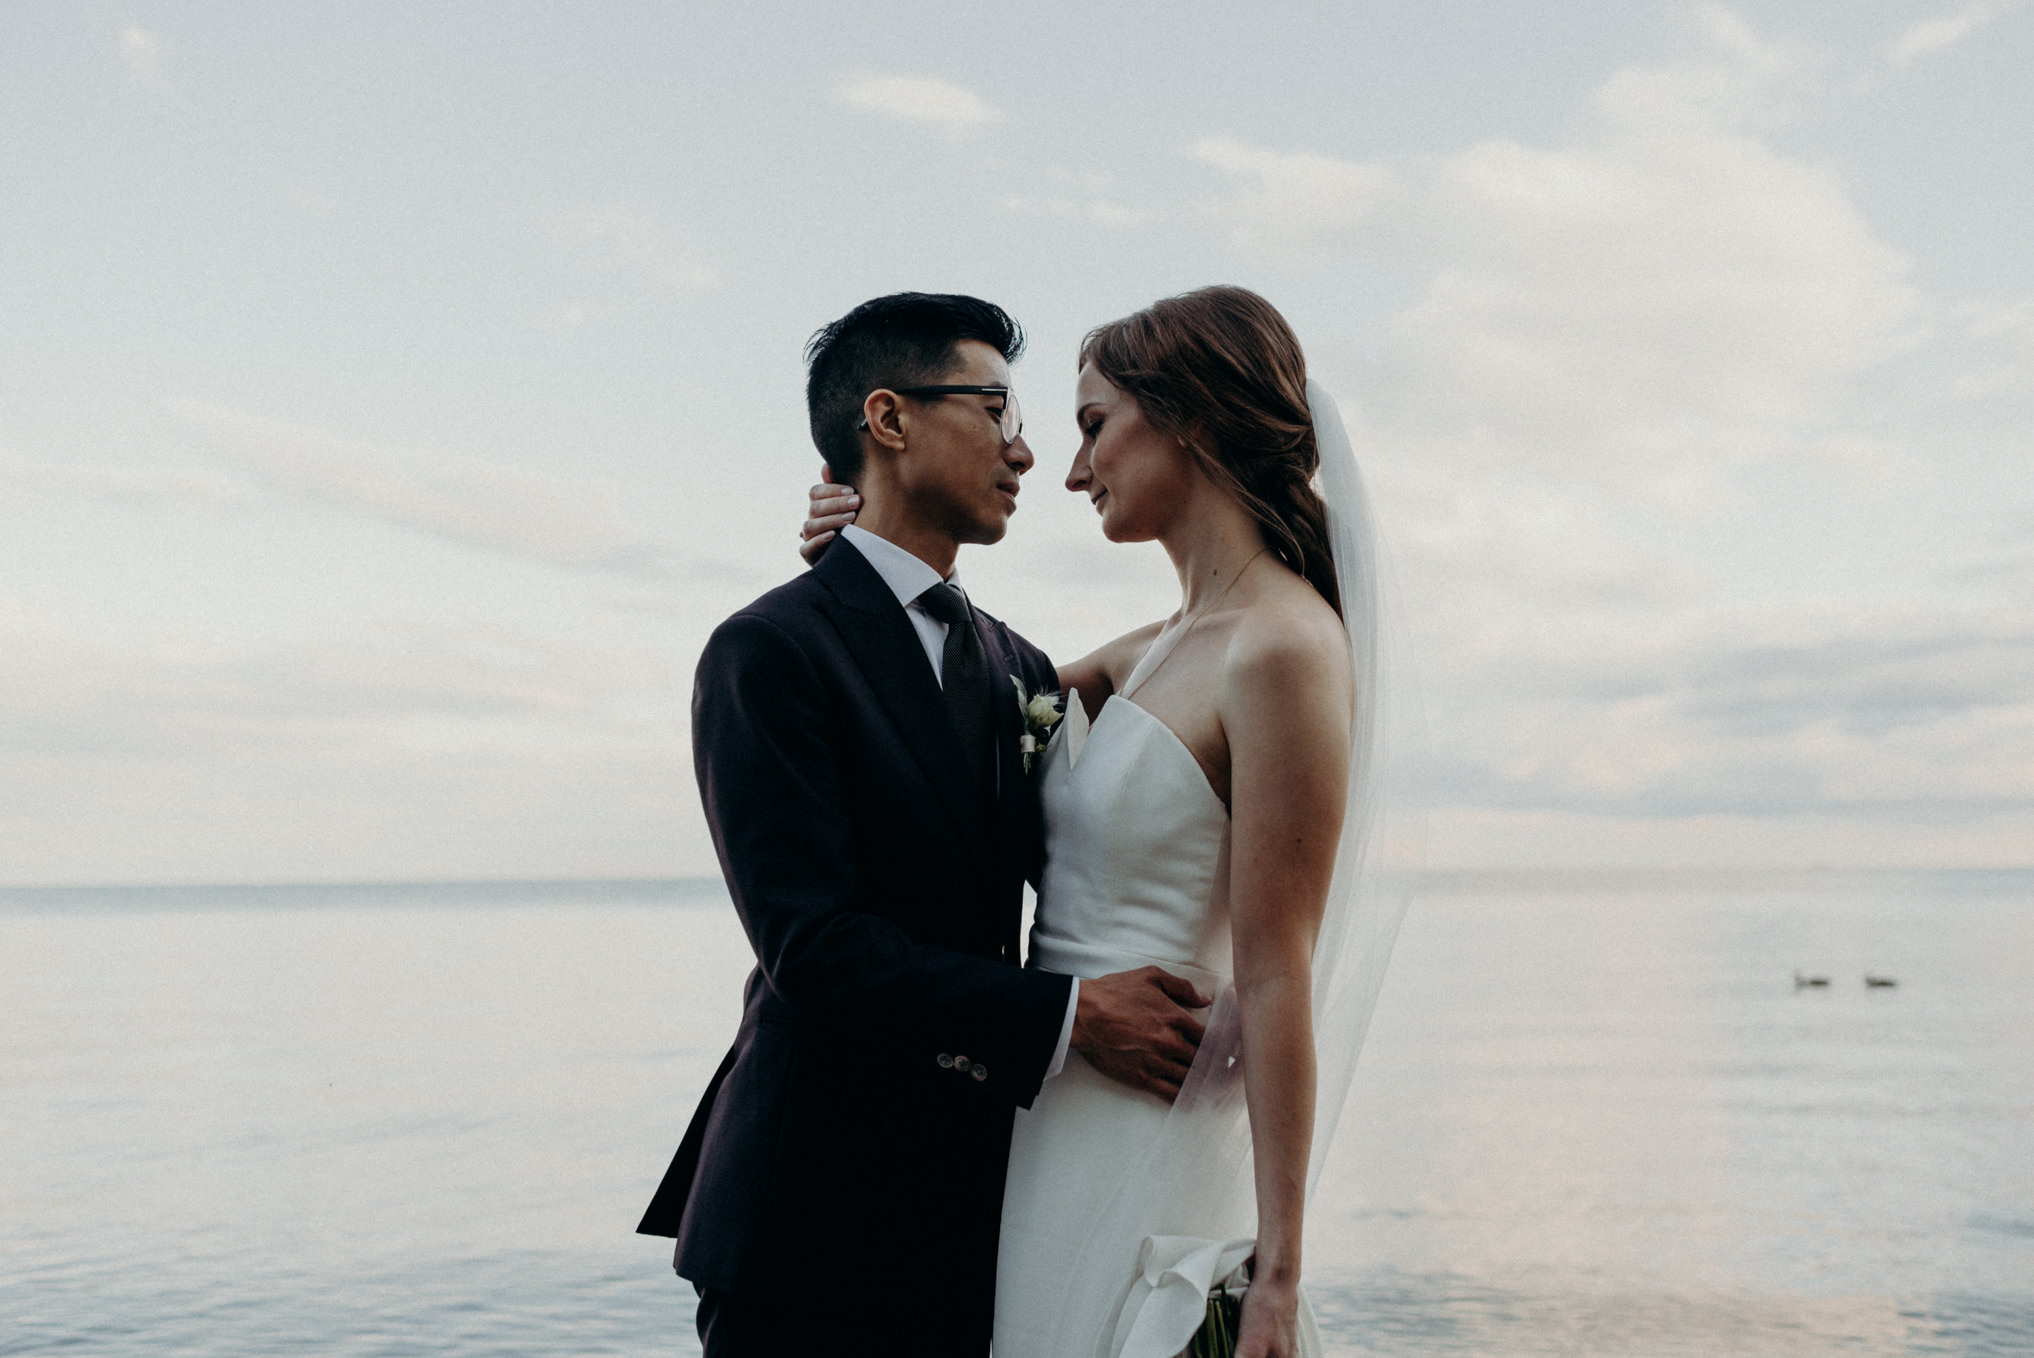 Bride and groom standing in front of calm lake Ontario, Humber Bay wedding portraits